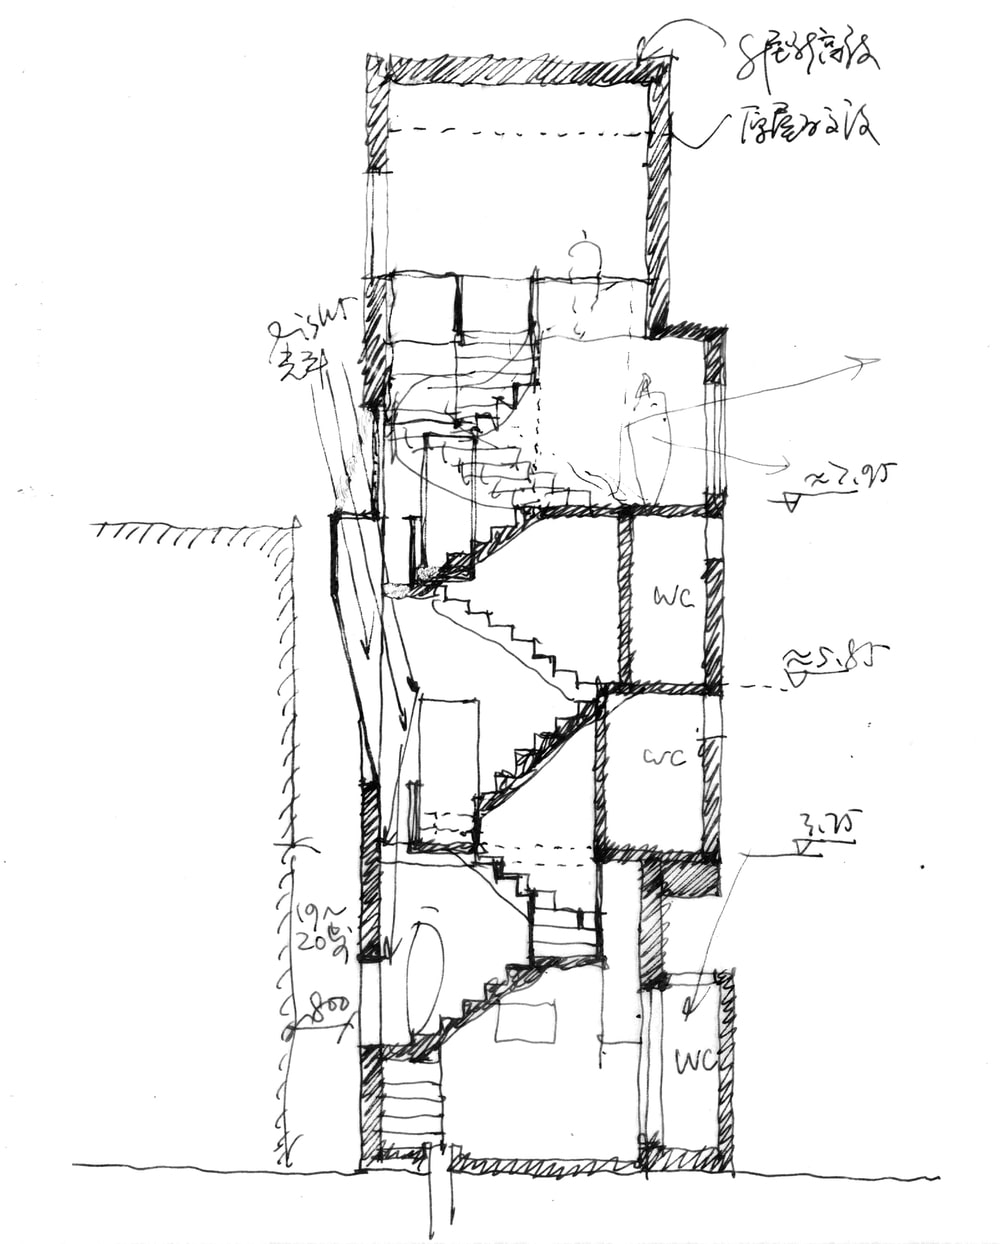 This is an illustration of the house's cross section elevation showcasing the stairs.